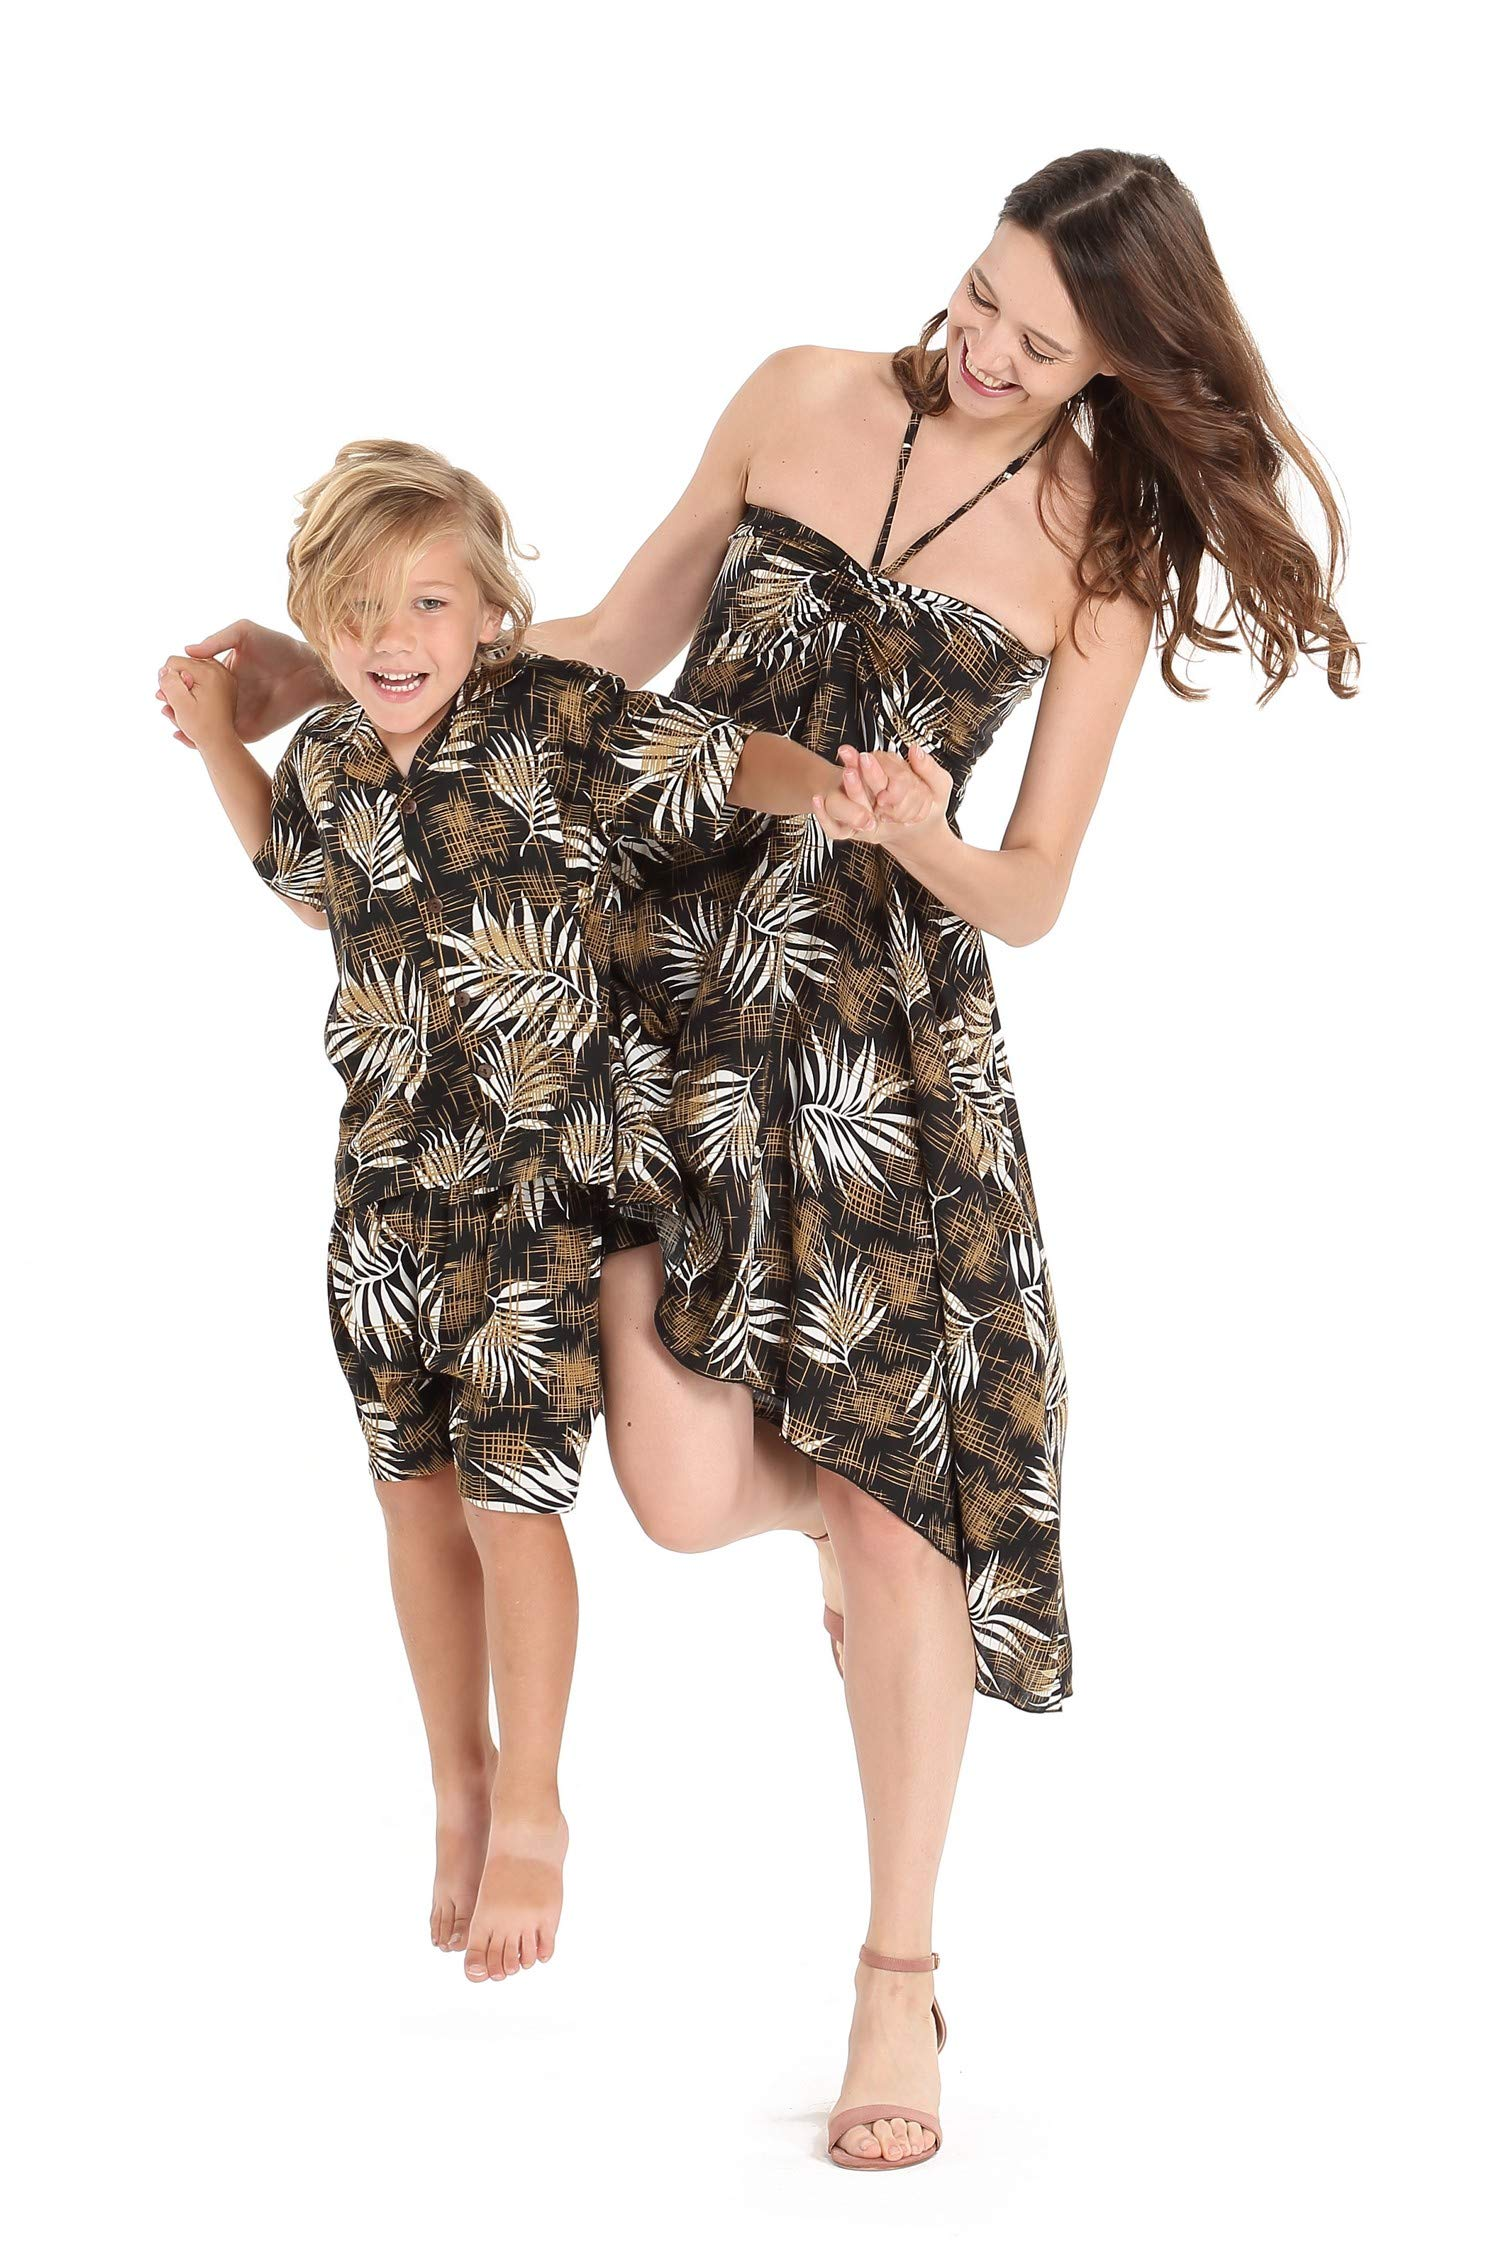 Matching Mother Son Hawaiian Luau Outfit Dress Shirt in Leaves in Black Women L Boy 8